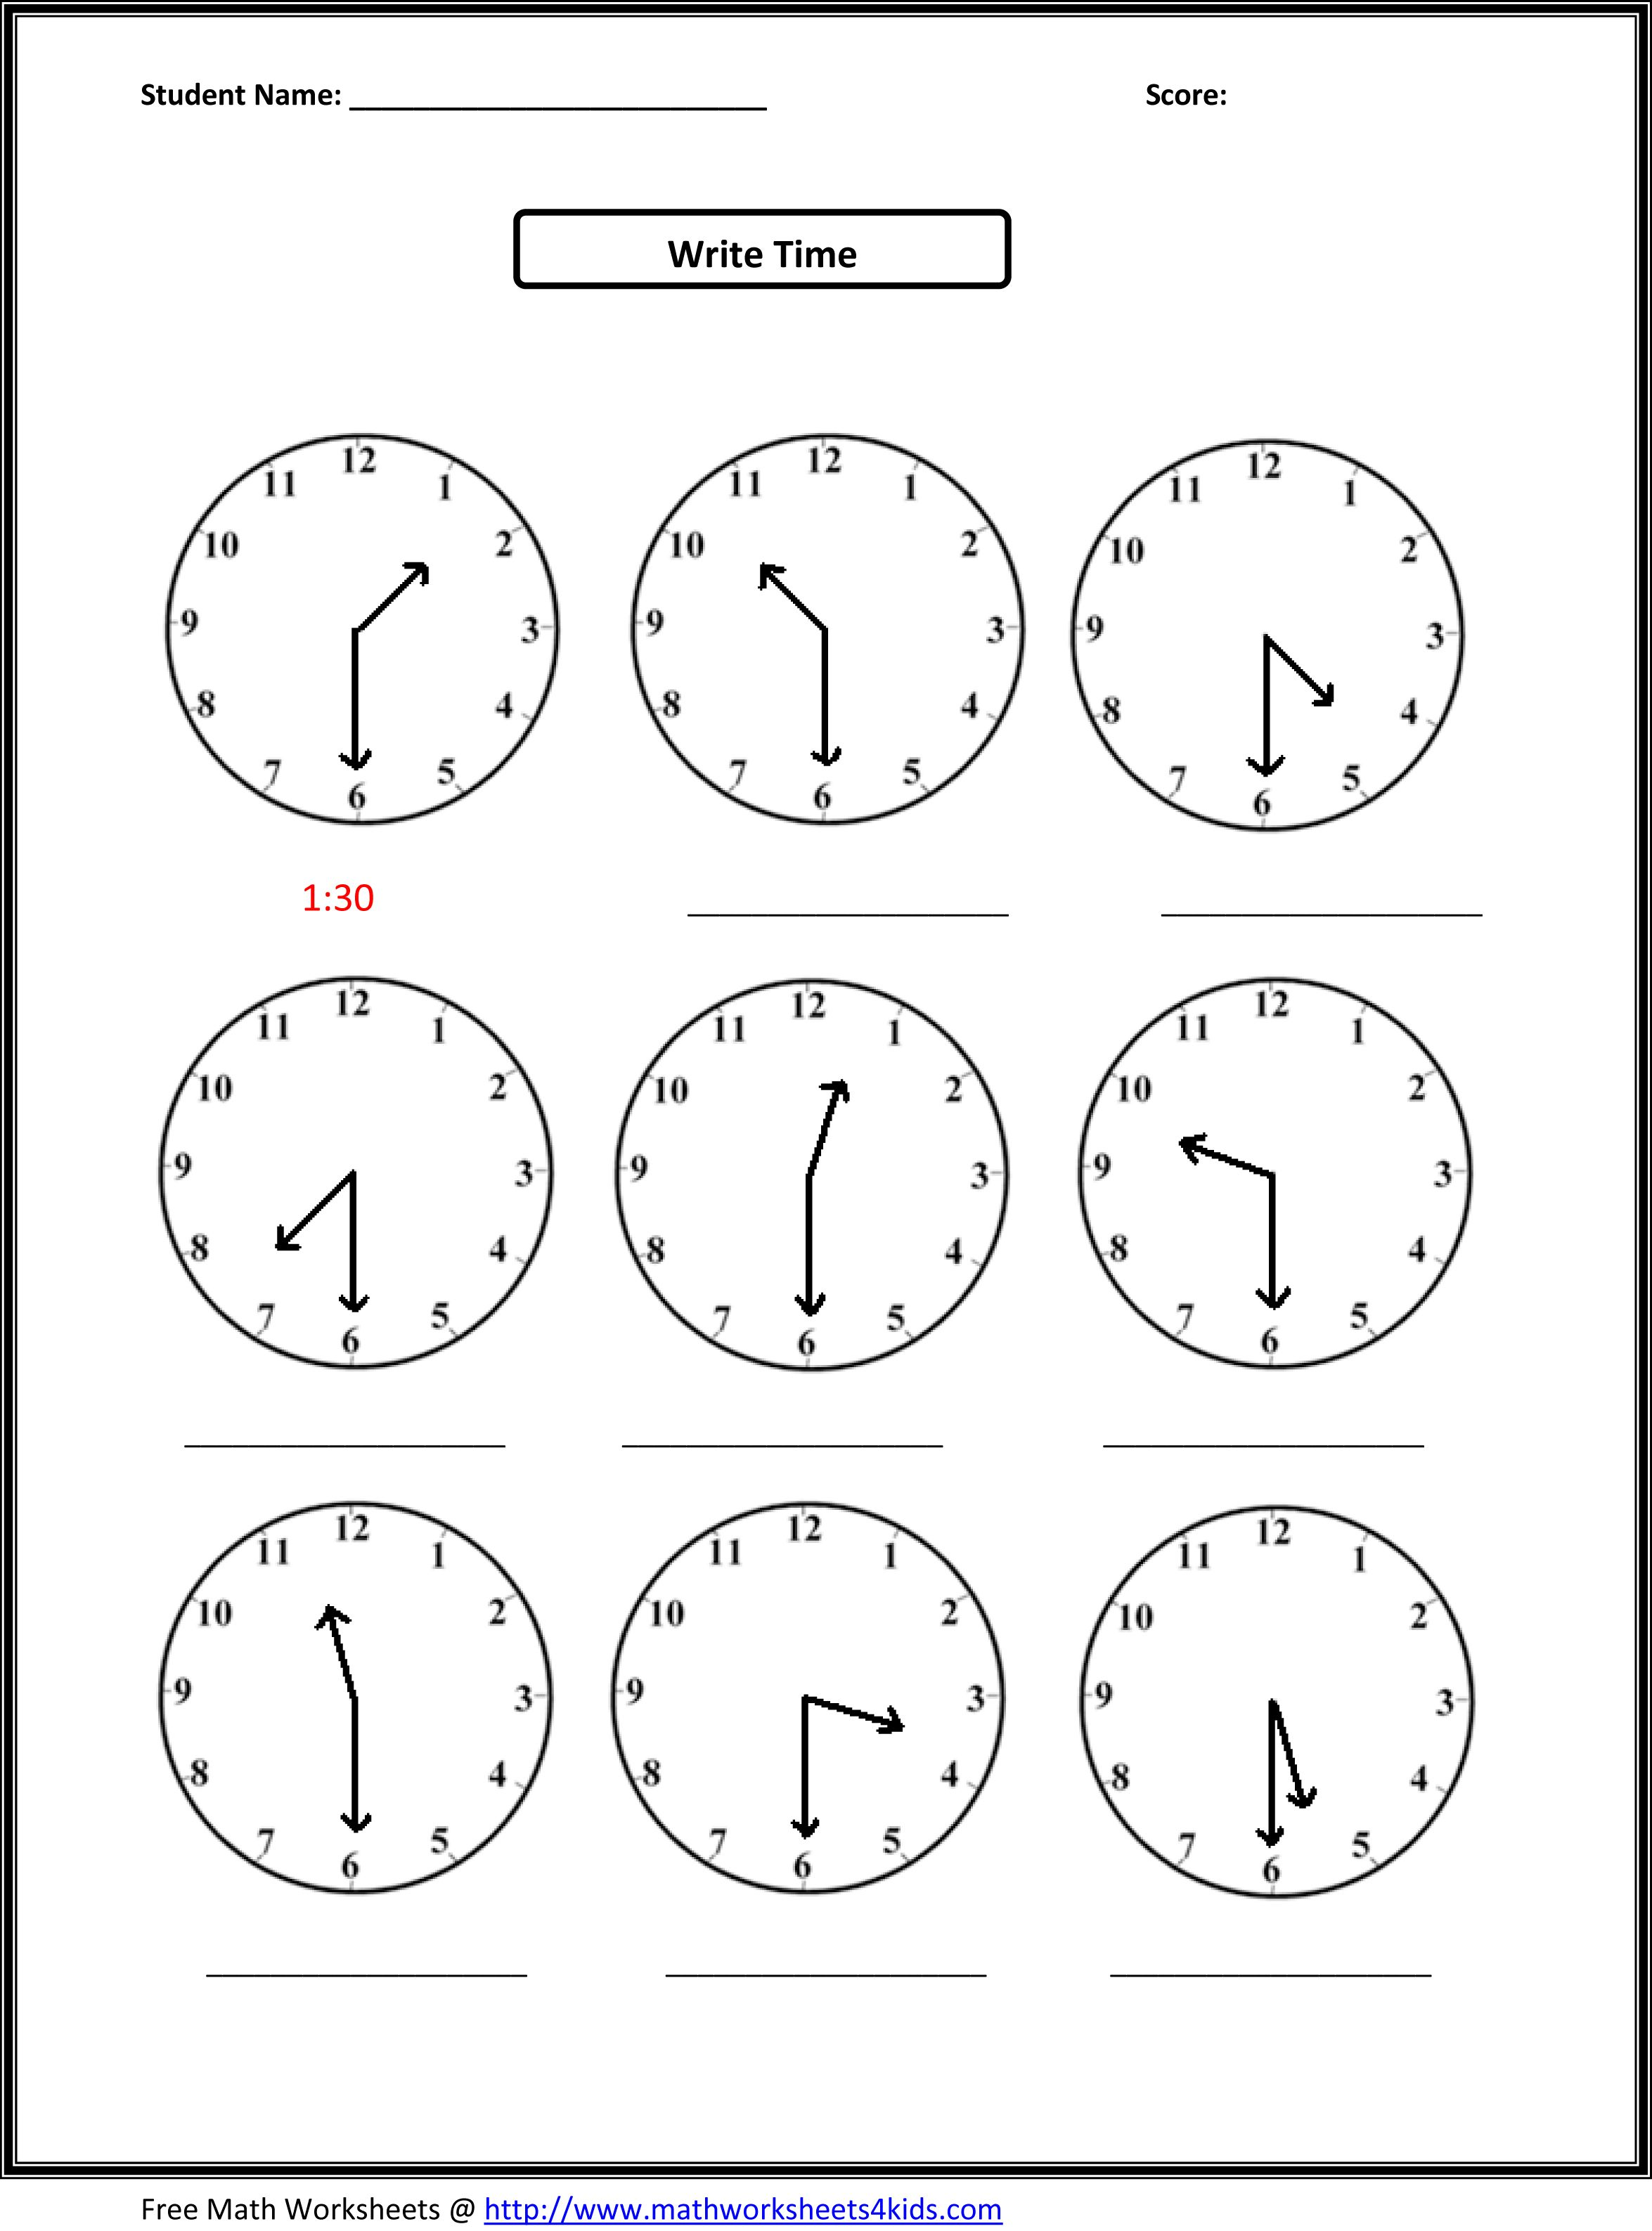 Weirdmailus  Marvelous Worksheet On Time For Grade   Reocurent With Handsome Free Printable Telling Time Worksheets Nd Grade  Reocurent With Alluring Number Worksheets For Kindergarten   Also Roman Baths Worksheet In Addition Project Tracking Worksheet And Teamwork Worksheets As Well As Writing Prompts Worksheets Additionally Singular Possessive Nouns Worksheet From Reocurentcom With Weirdmailus  Handsome Worksheet On Time For Grade   Reocurent With Alluring Free Printable Telling Time Worksheets Nd Grade  Reocurent And Marvelous Number Worksheets For Kindergarten   Also Roman Baths Worksheet In Addition Project Tracking Worksheet From Reocurentcom